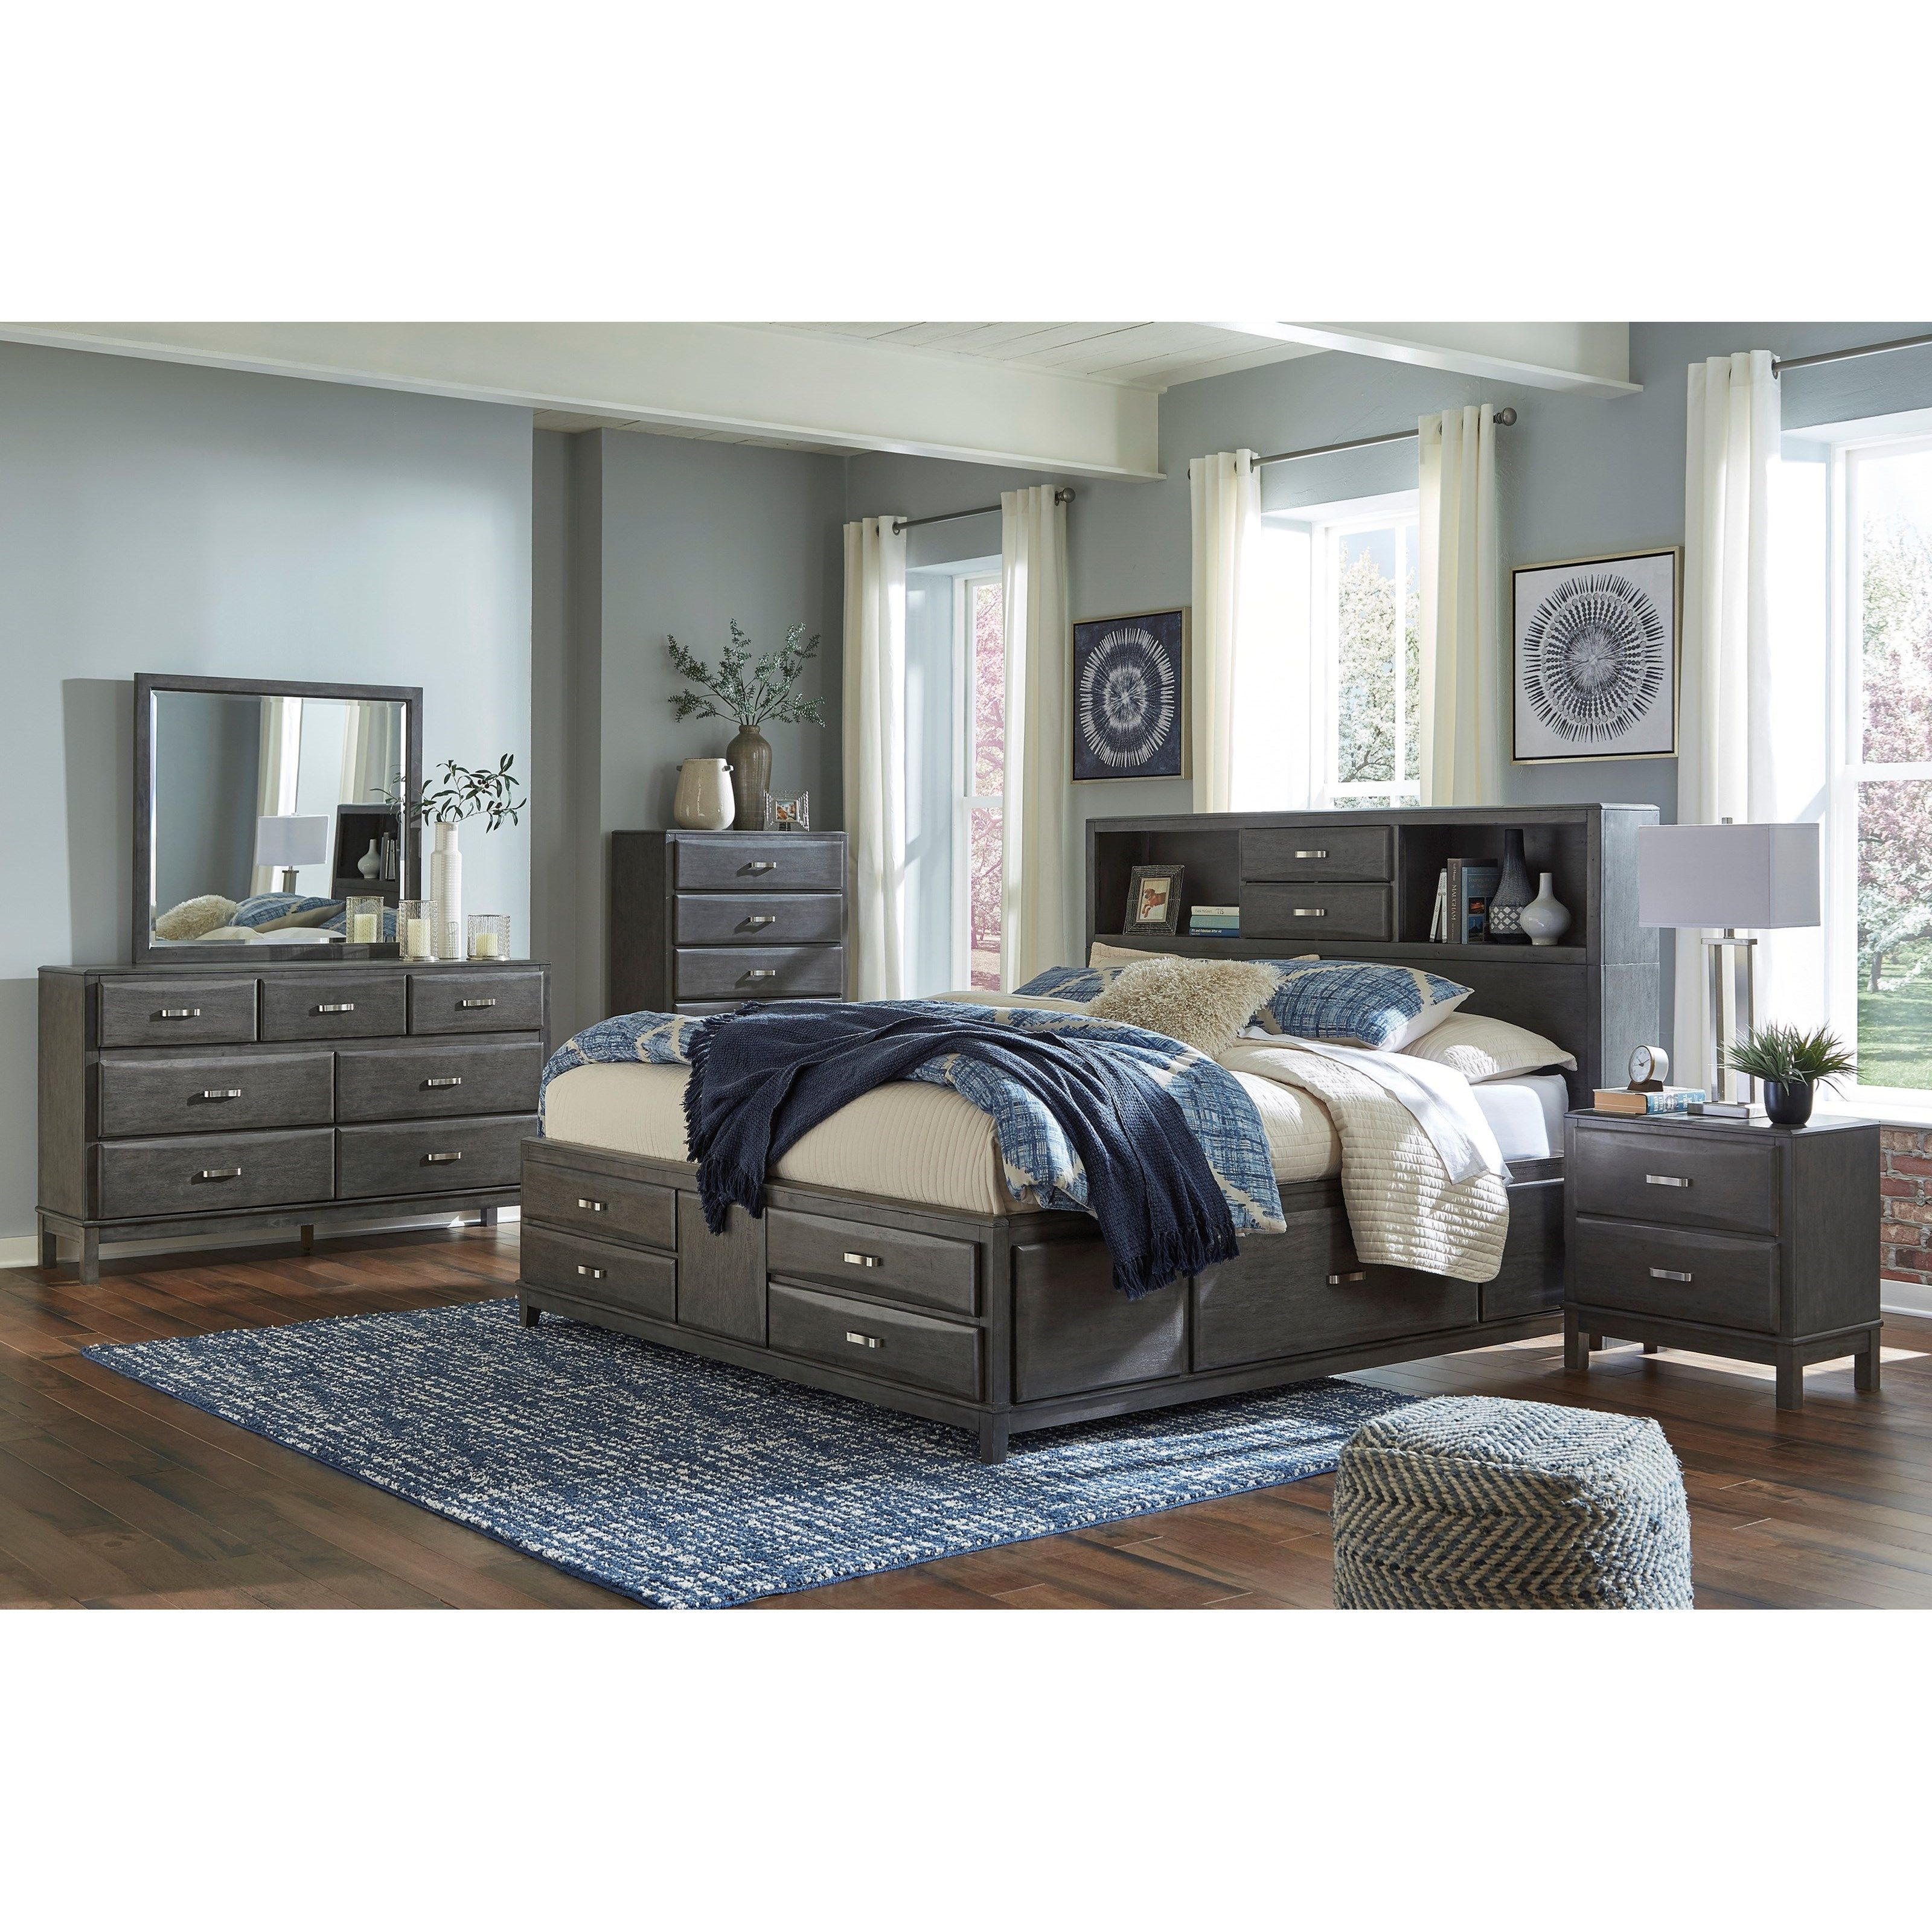 Caitbrook Full Bedroom Group by Signature Design by Ashley